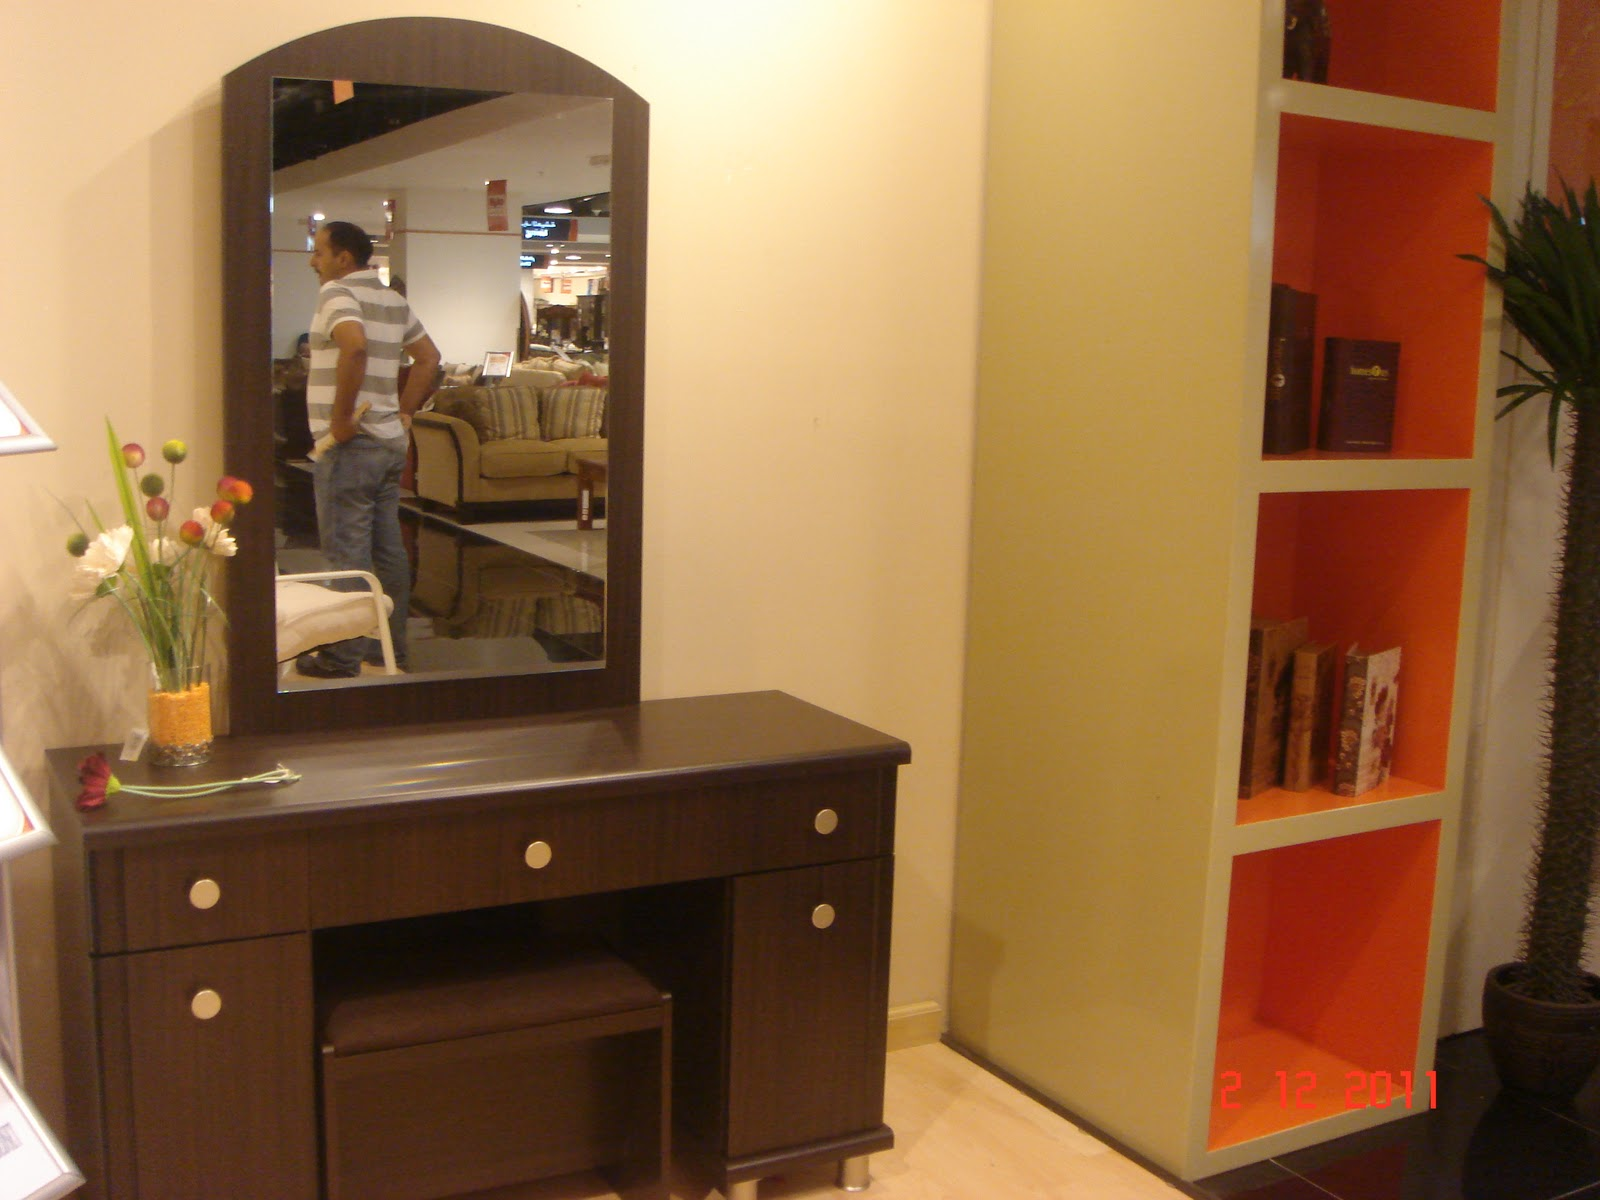 Modern dressing table with mirror - Modern Wooden Dressing Table Designs With Mirror Lights Dsc07385